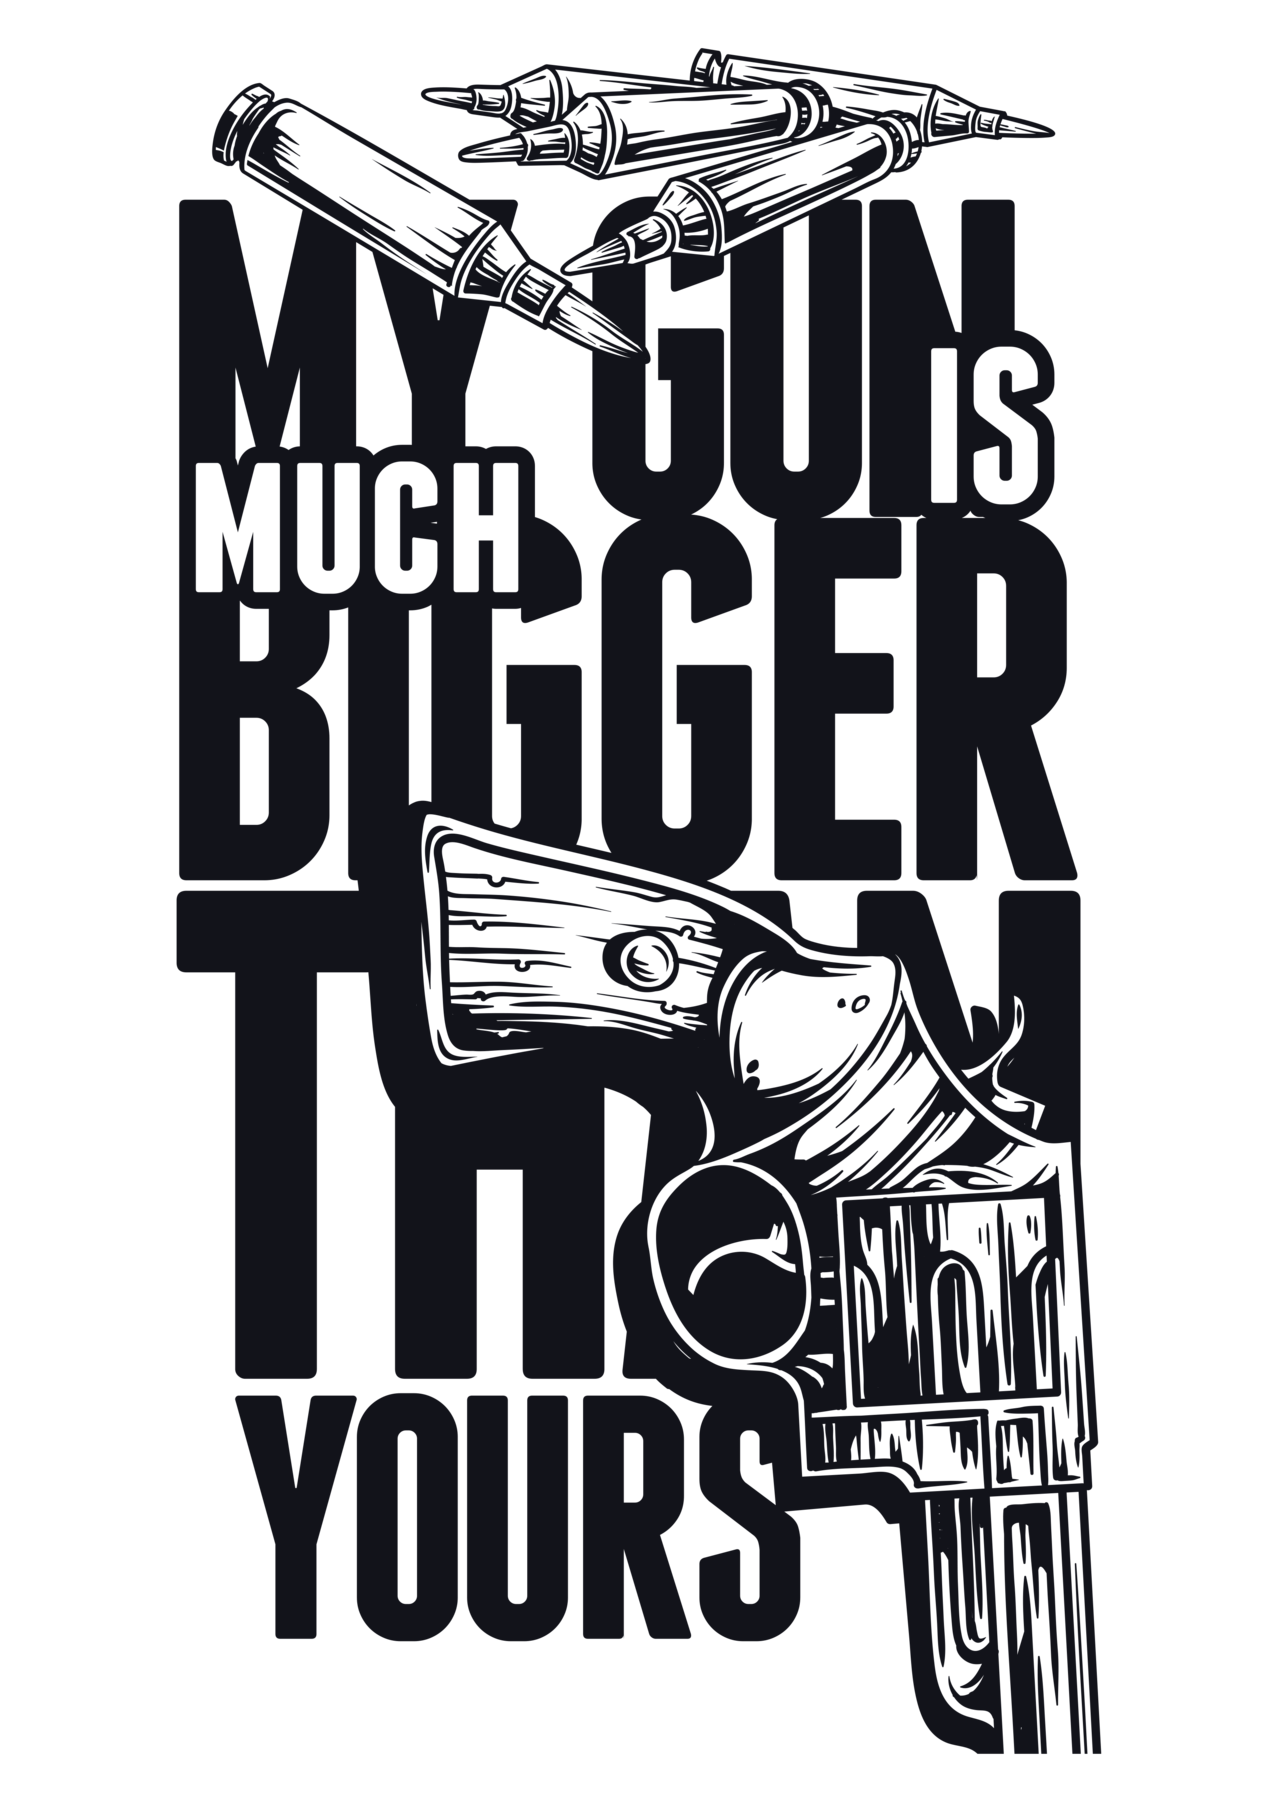 Shirt design png. April onthemarch co